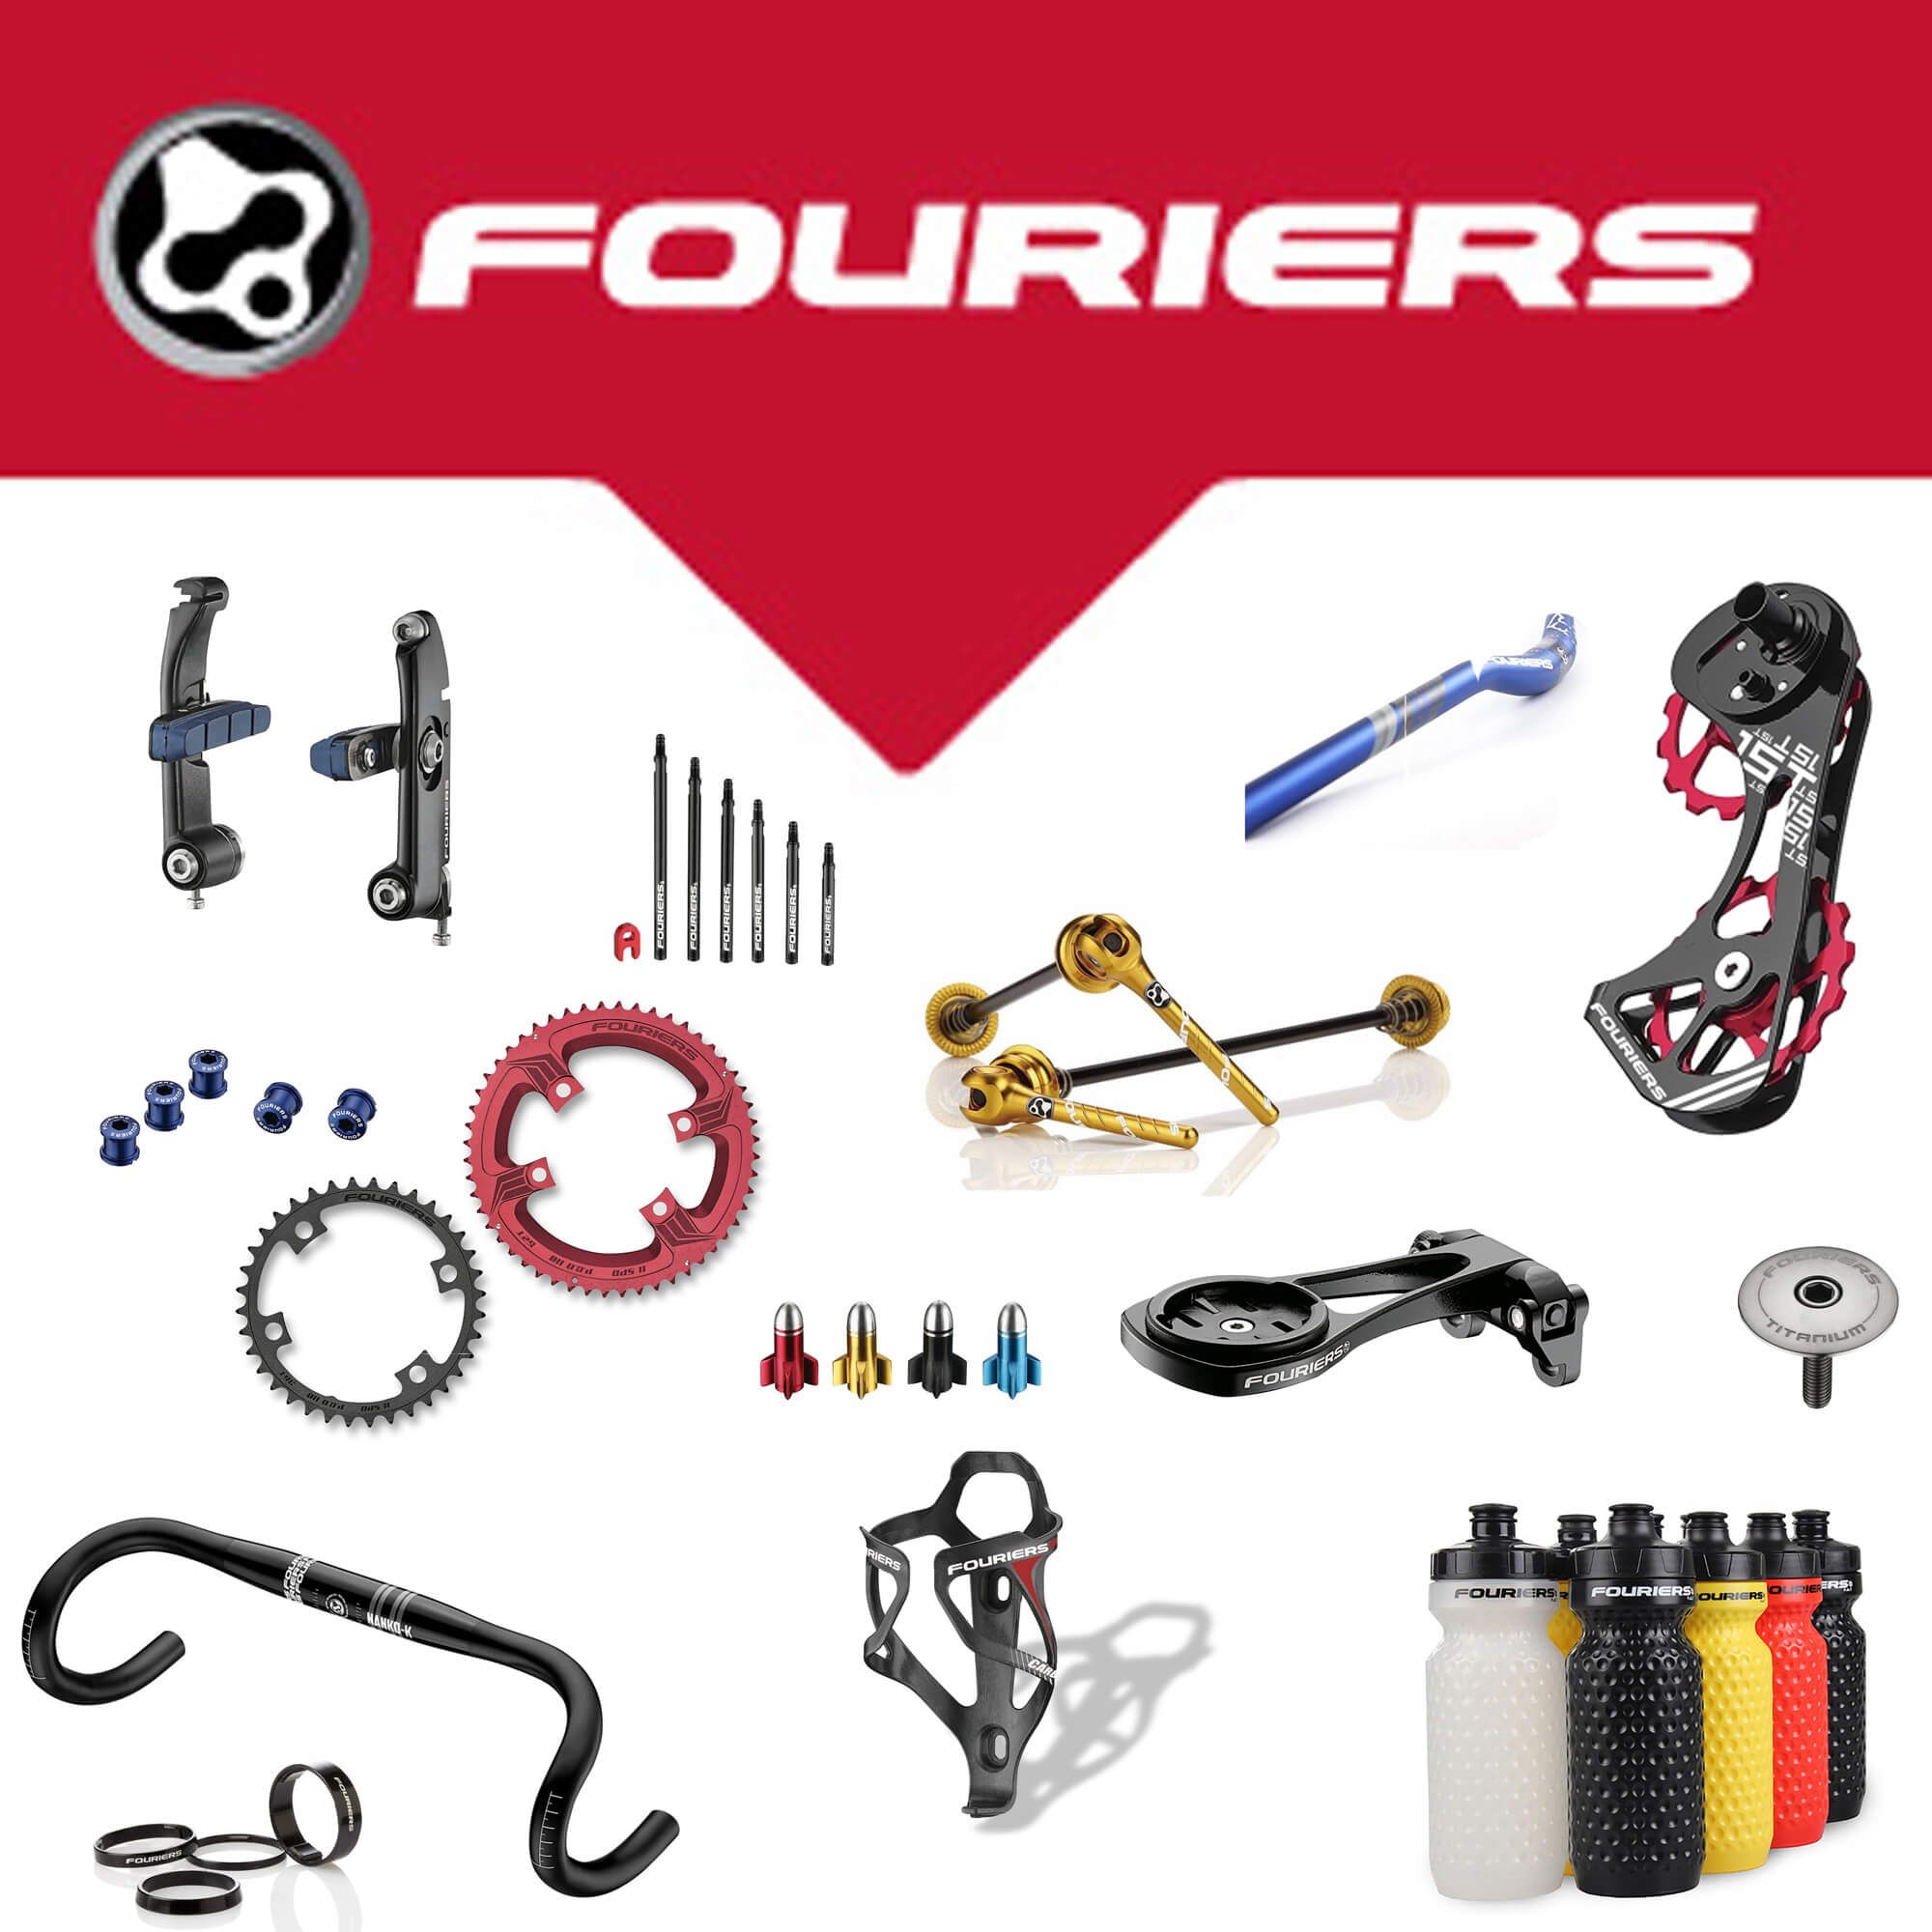 fouriers-bike-freins-cintre-potence-support-compteur